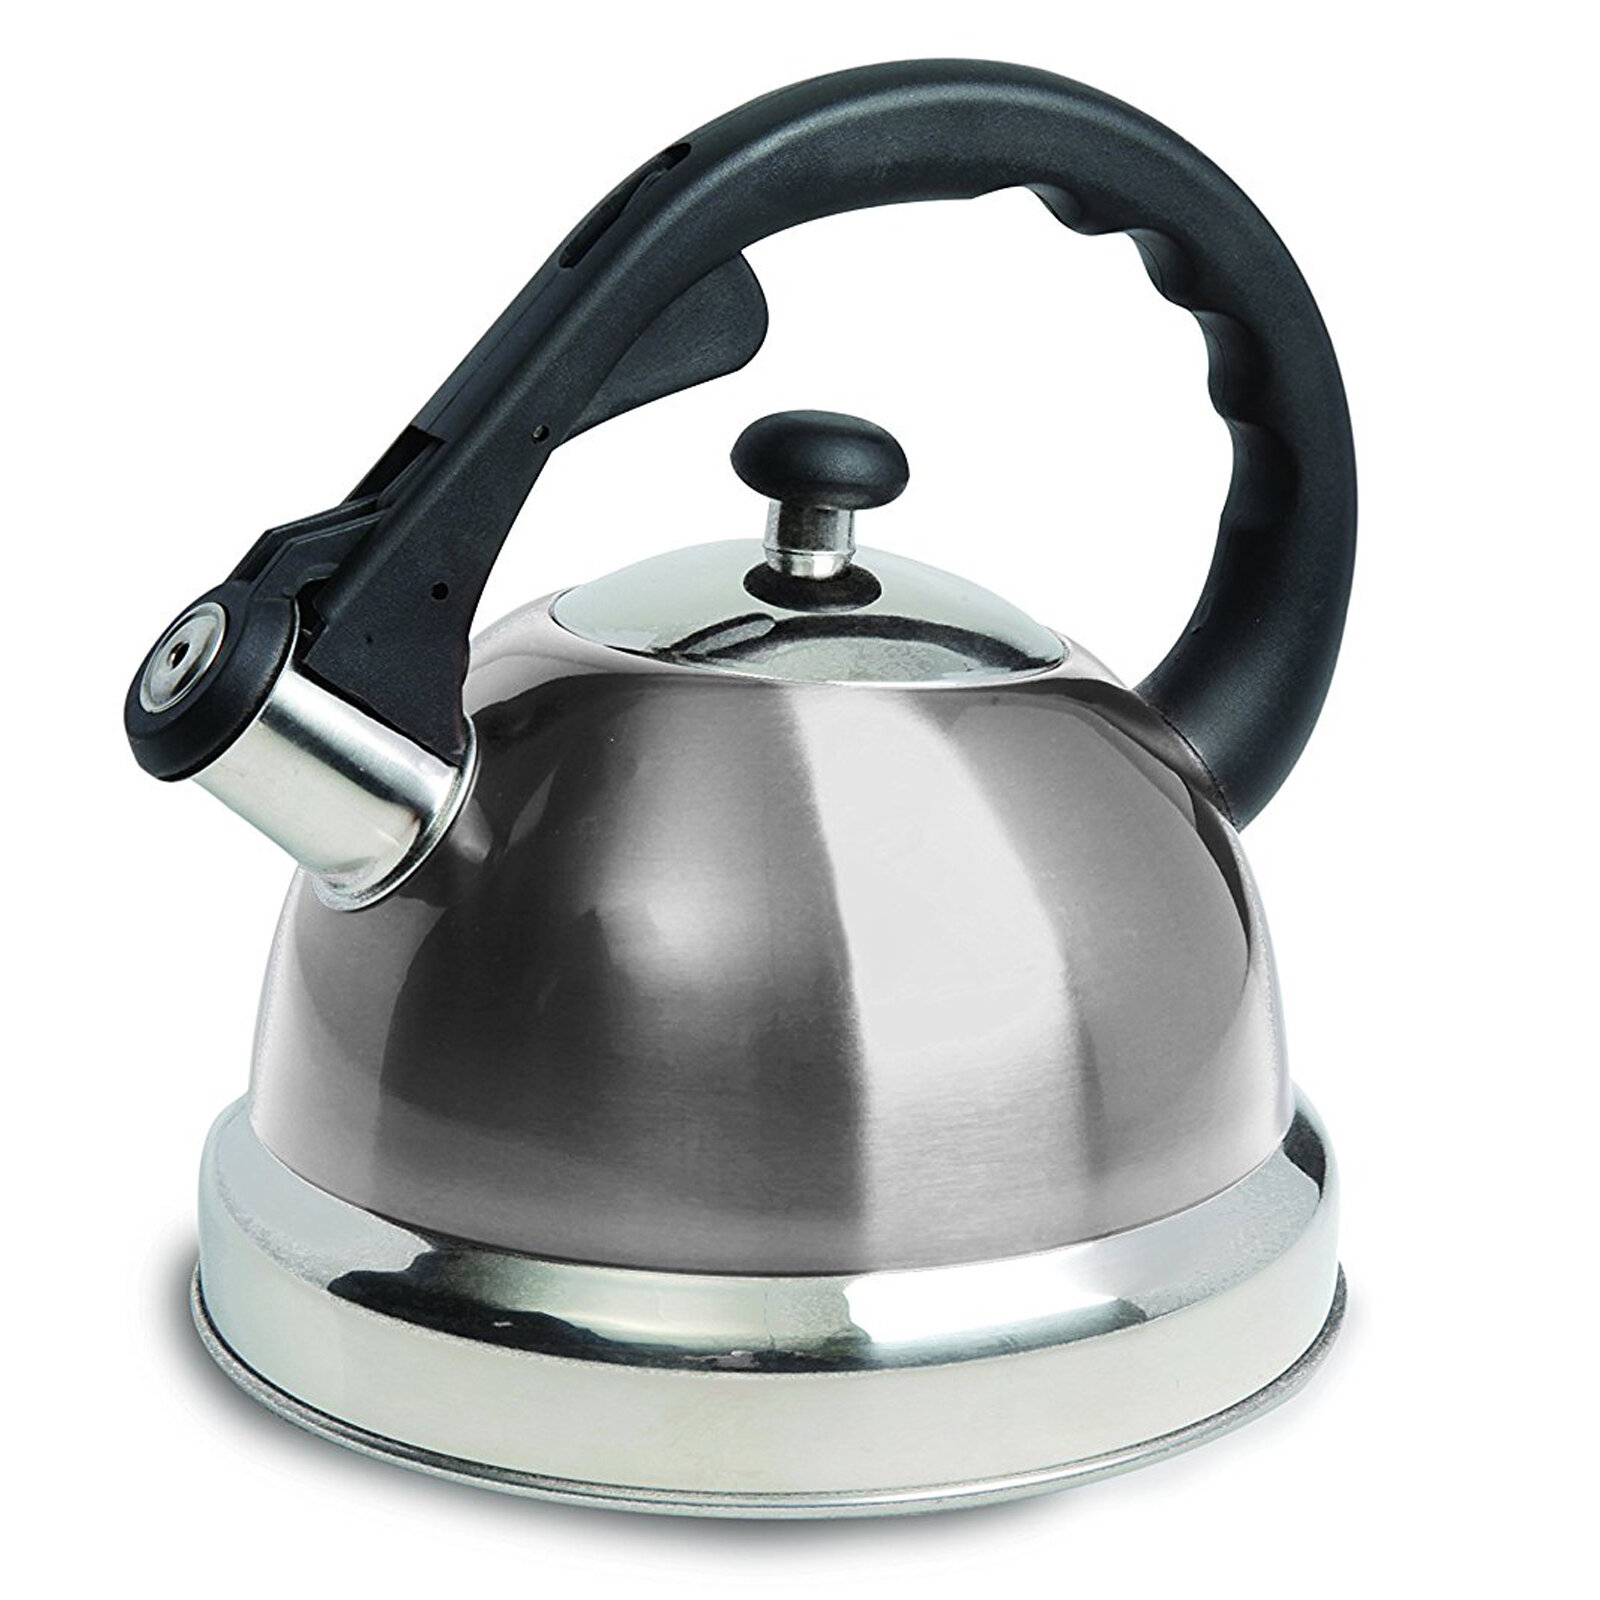 Gibson Mr Coffee 1 7 Qt Claredale Stainless Steel Whistling Stovetop Kettle Wayfair